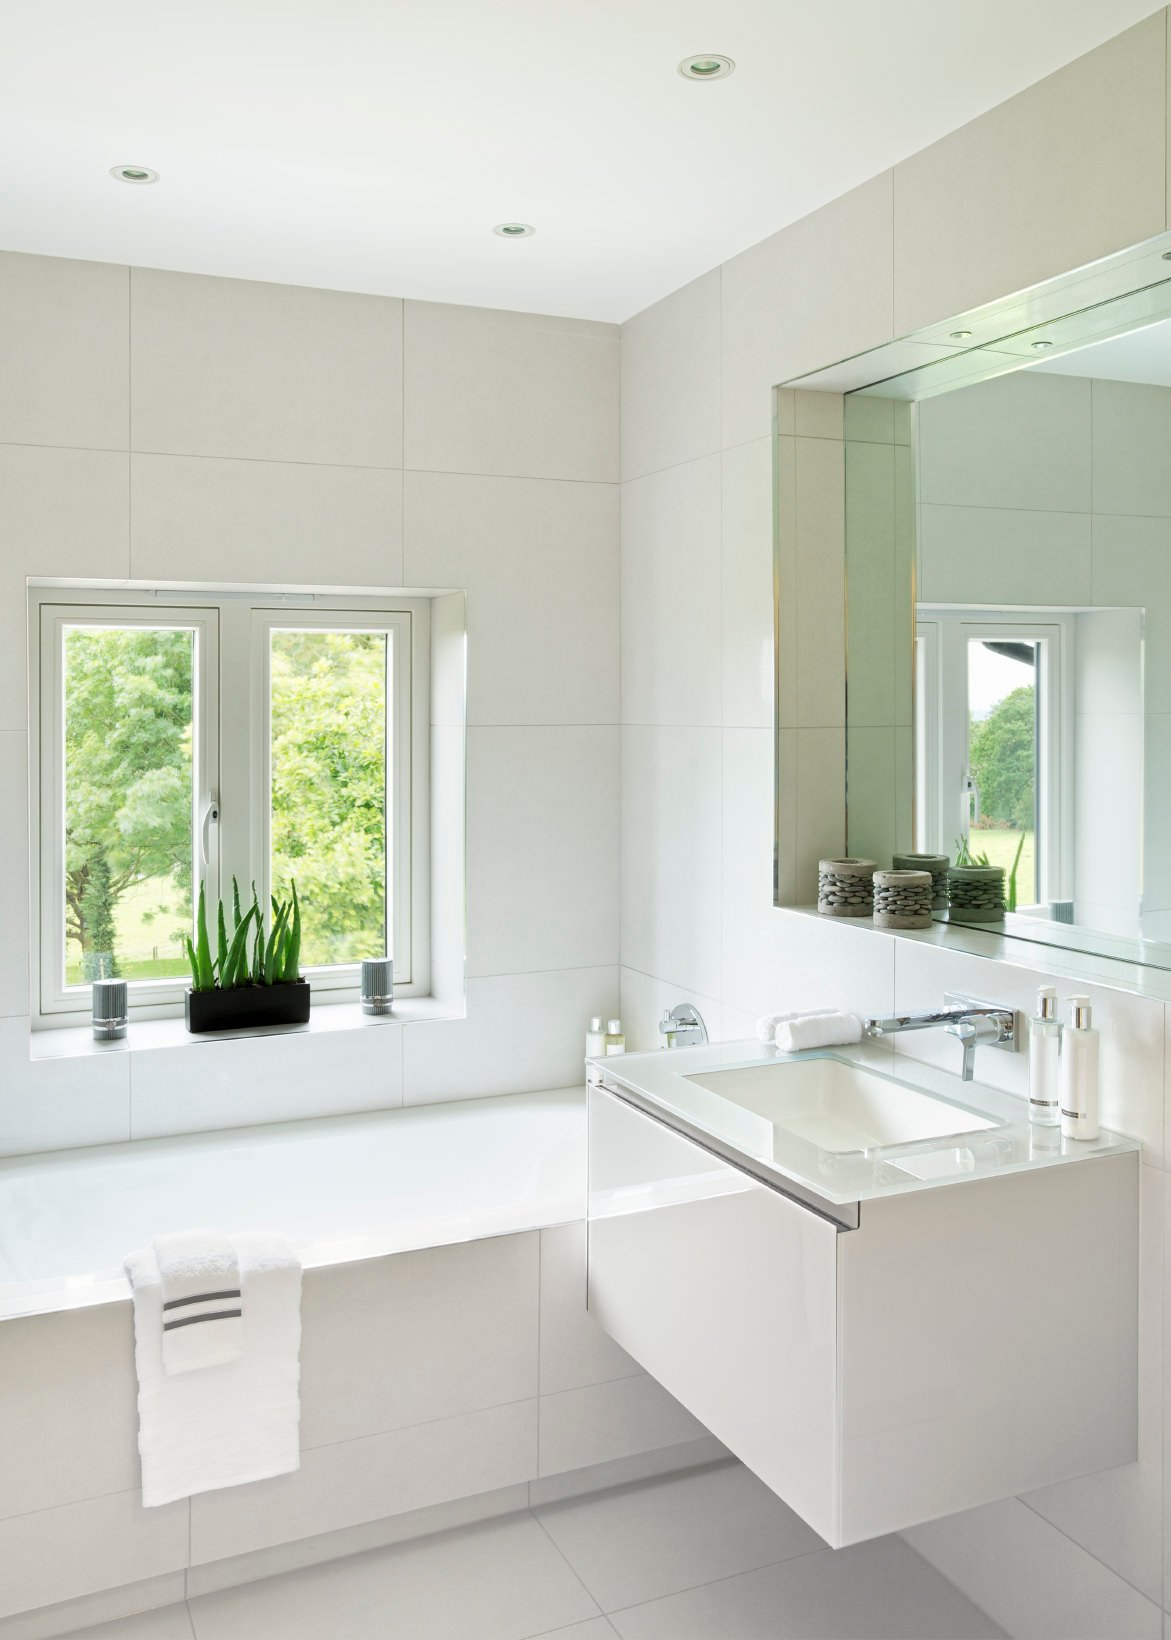 Giant oversized white colored tiles line the walls and flooring of this cube shaped bathroom and a large nook over the wall mounted contemporary styled vanity contains a large mirror and built in vanity lights. The large garden tub with sleek modern styled chrome fixtures with the translucent countertop and inset sink add finishing touches to this modern bright cube like bathroom.